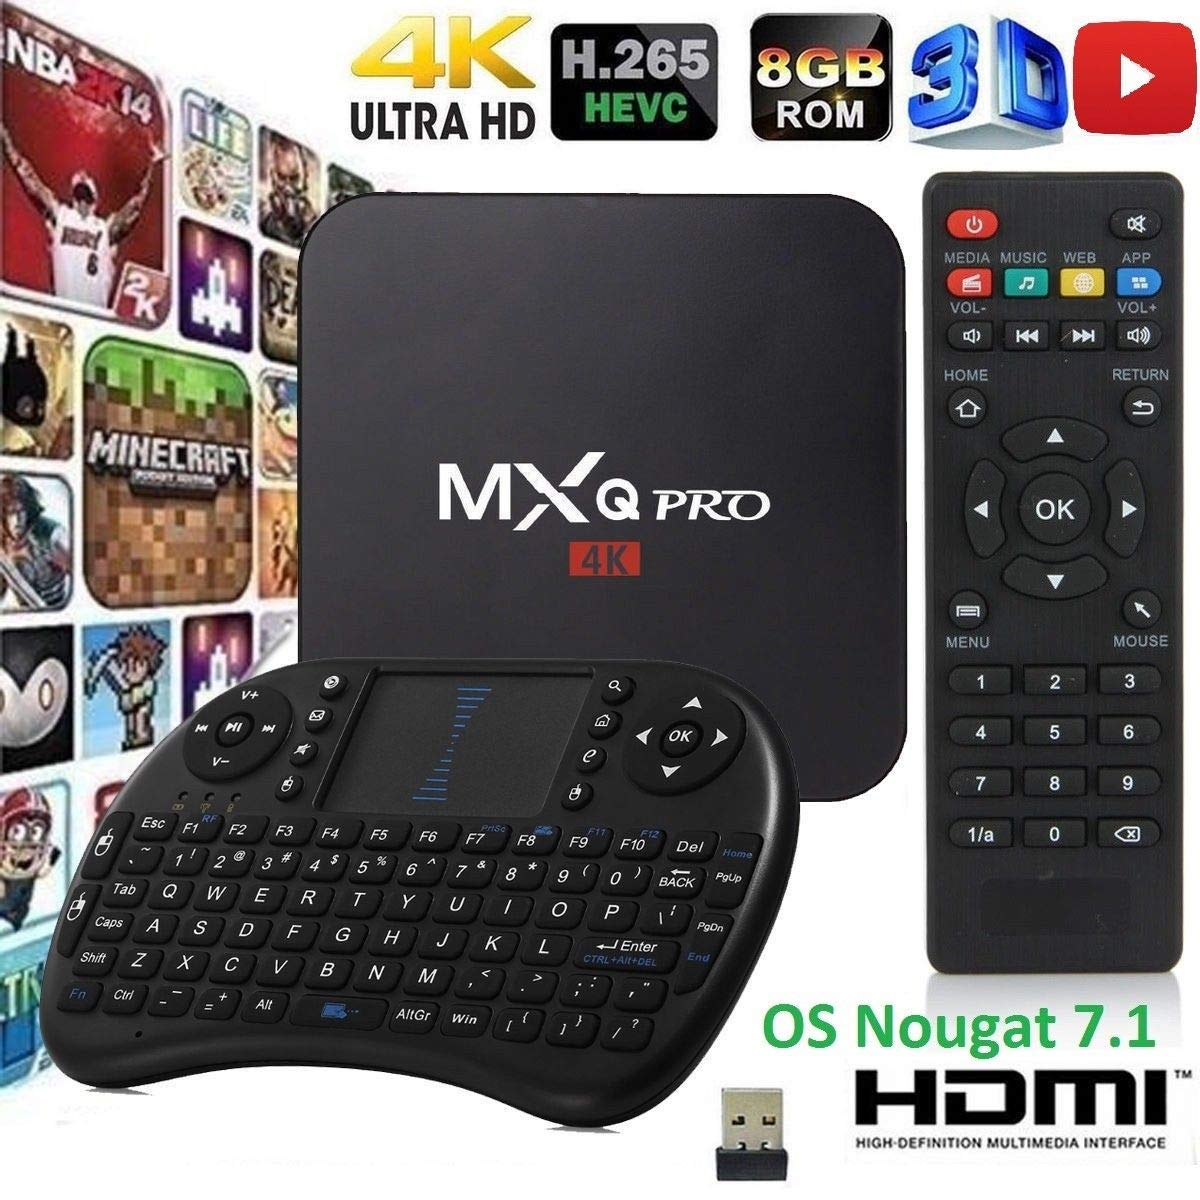 Mega1Comp - MXQ Pro HDTV Box Full HD 1080P up to 4K Android 7.1 64 Bit Amlogic S905W Quad Core 1G/8G HDMI WiFi Internet Browser/Games/Apps Google Play with Mini Wireless Keyboard